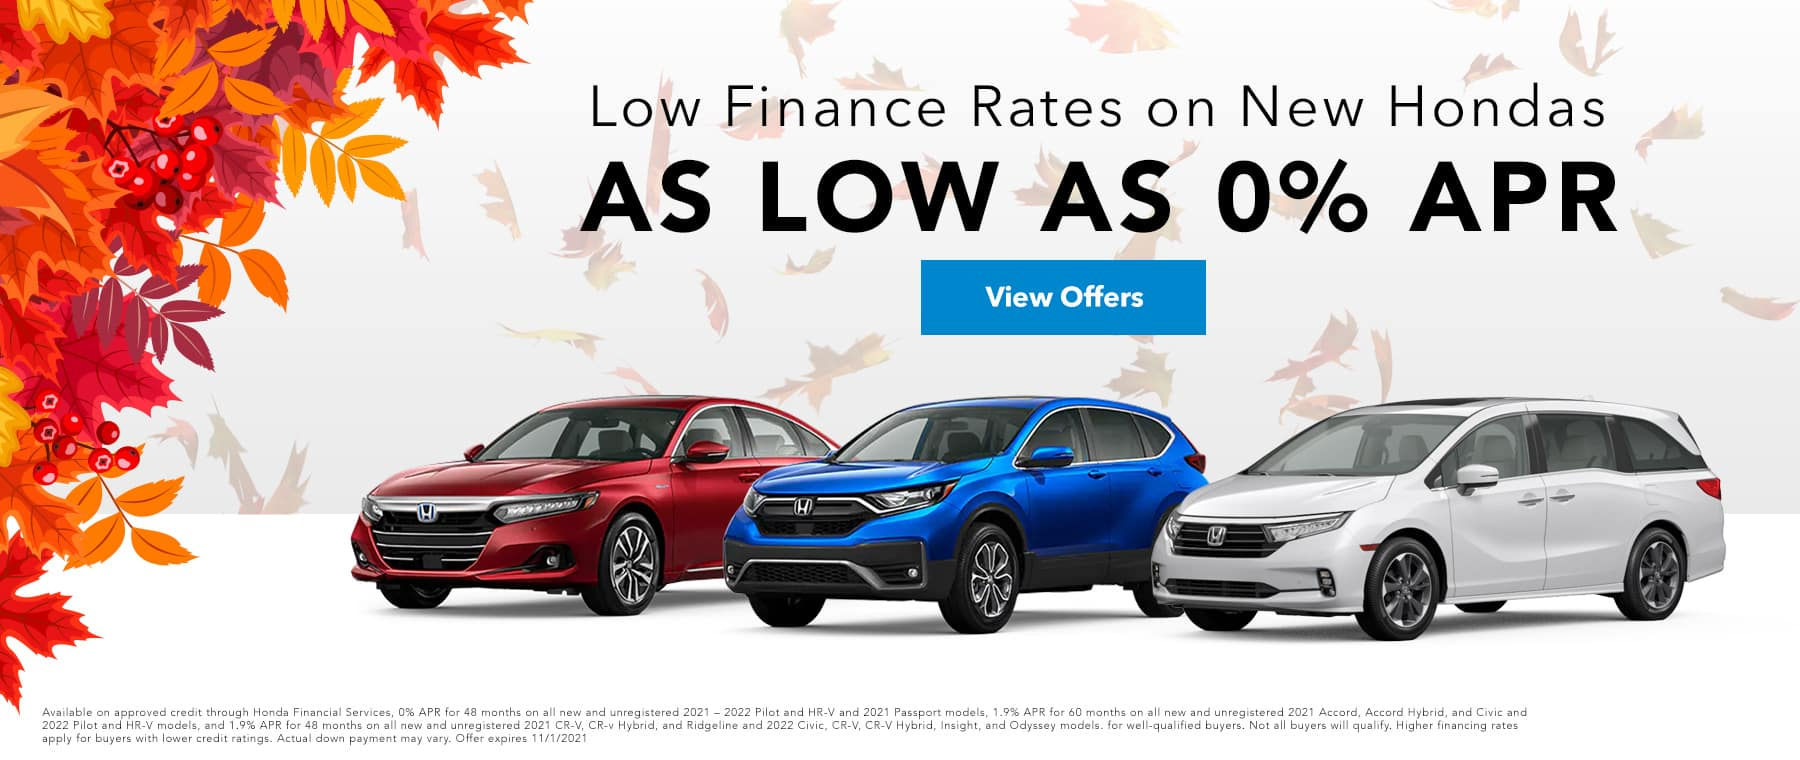 LOW FINANCE RATES ON NEW HONDAS, AS LOW AS 0% APR